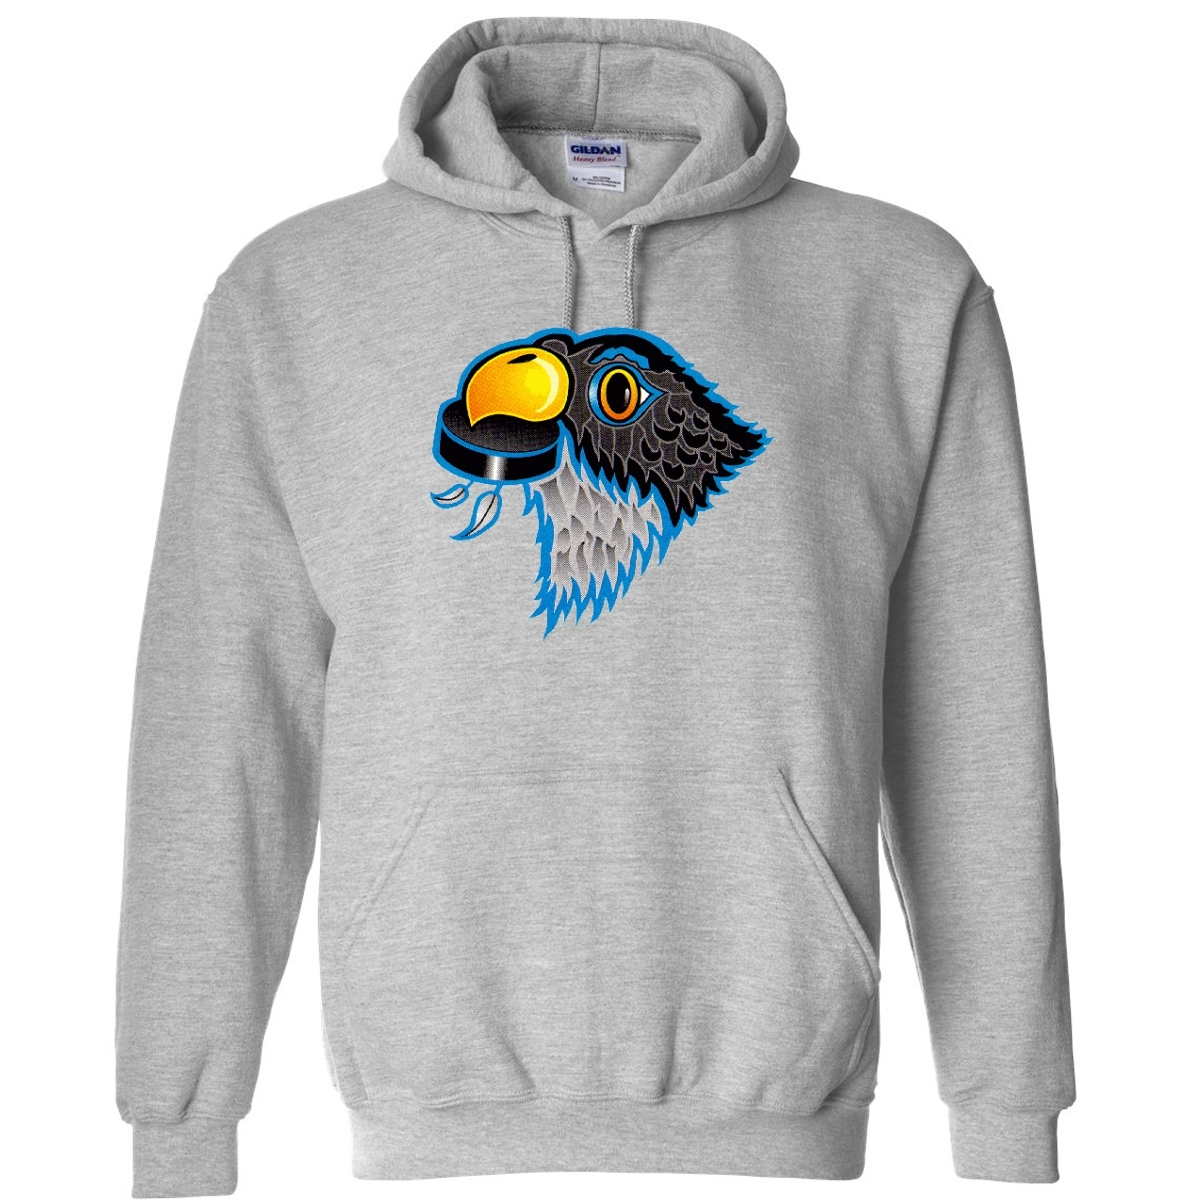 00514 hockey american league springfield falcons hoodie ash